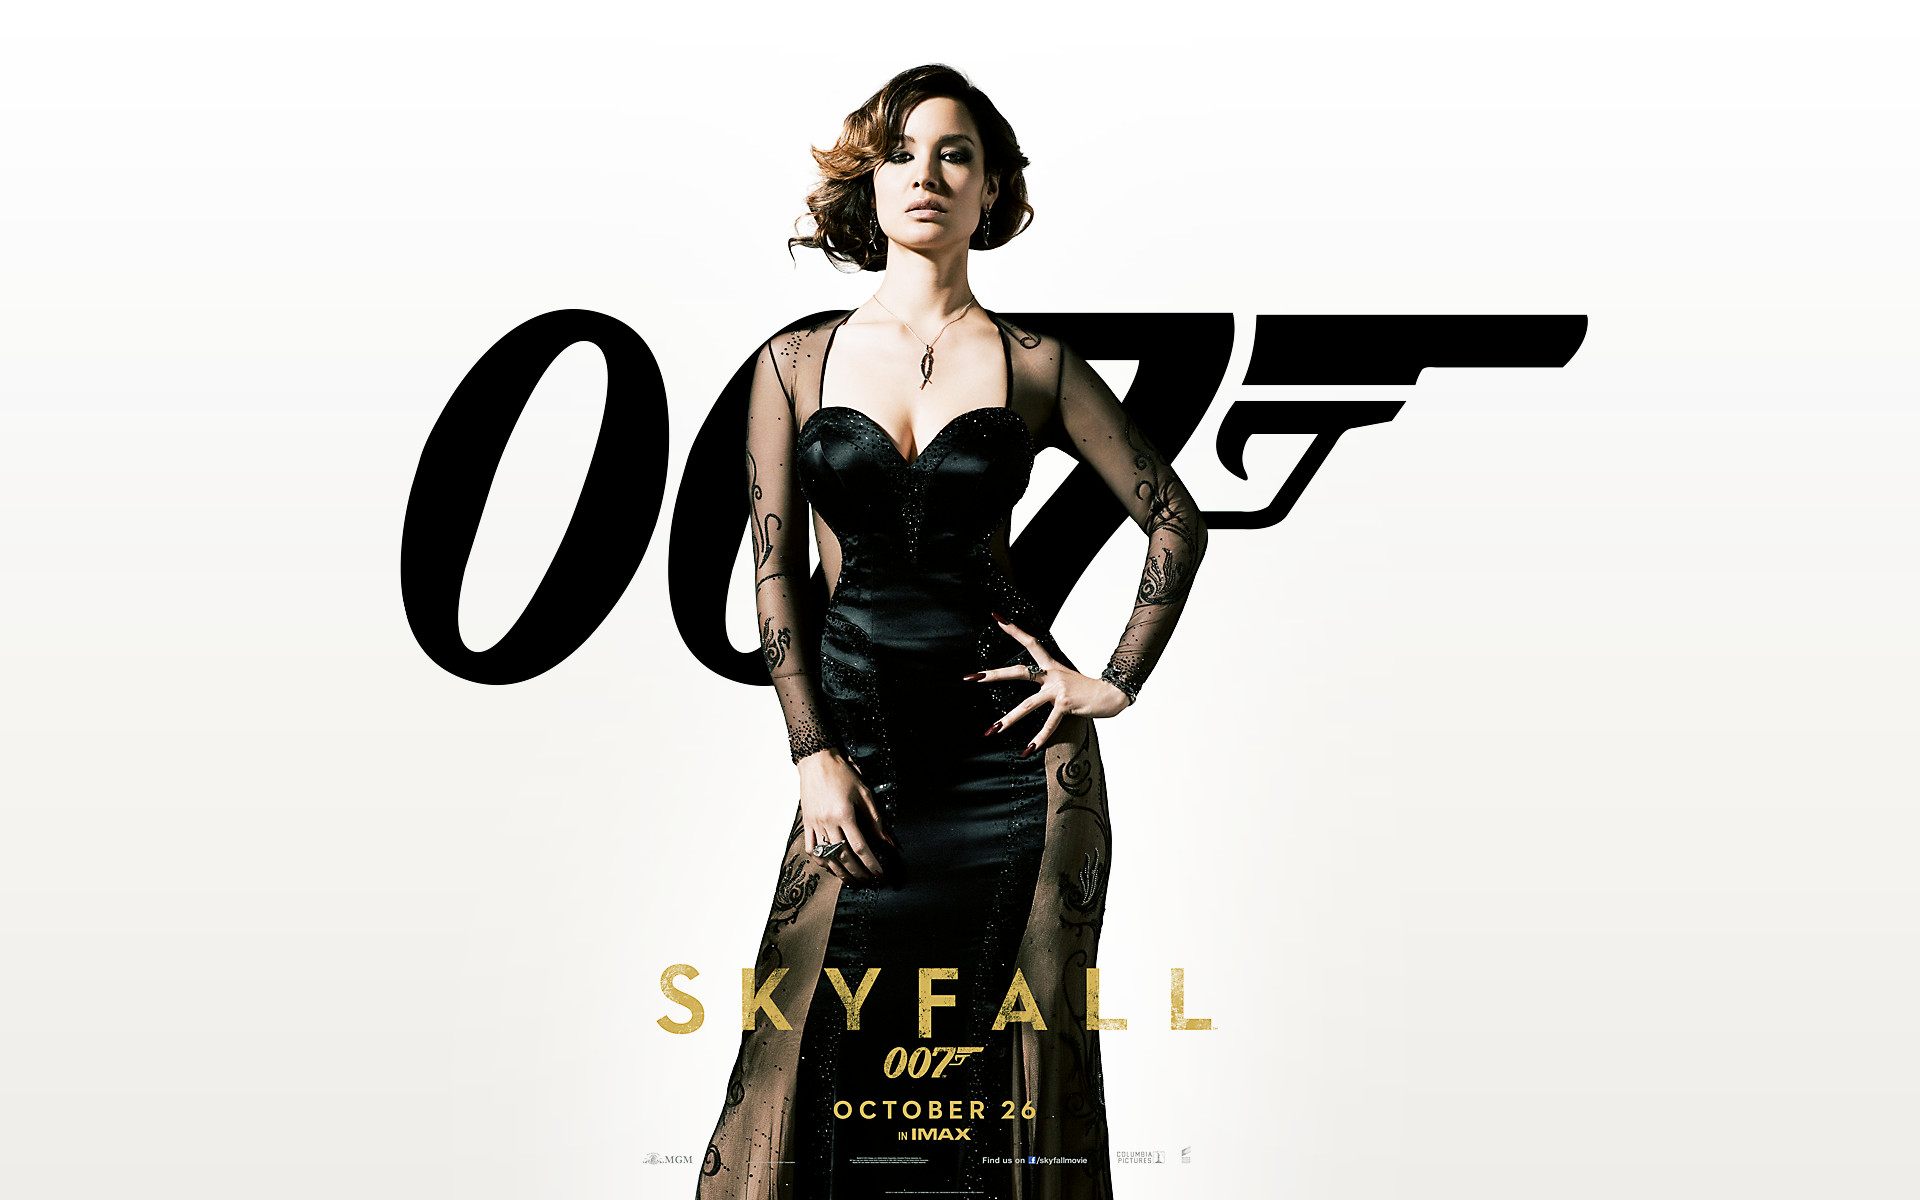 skyfall full hd wallpaper and background image | 1920x1200 | id:325460